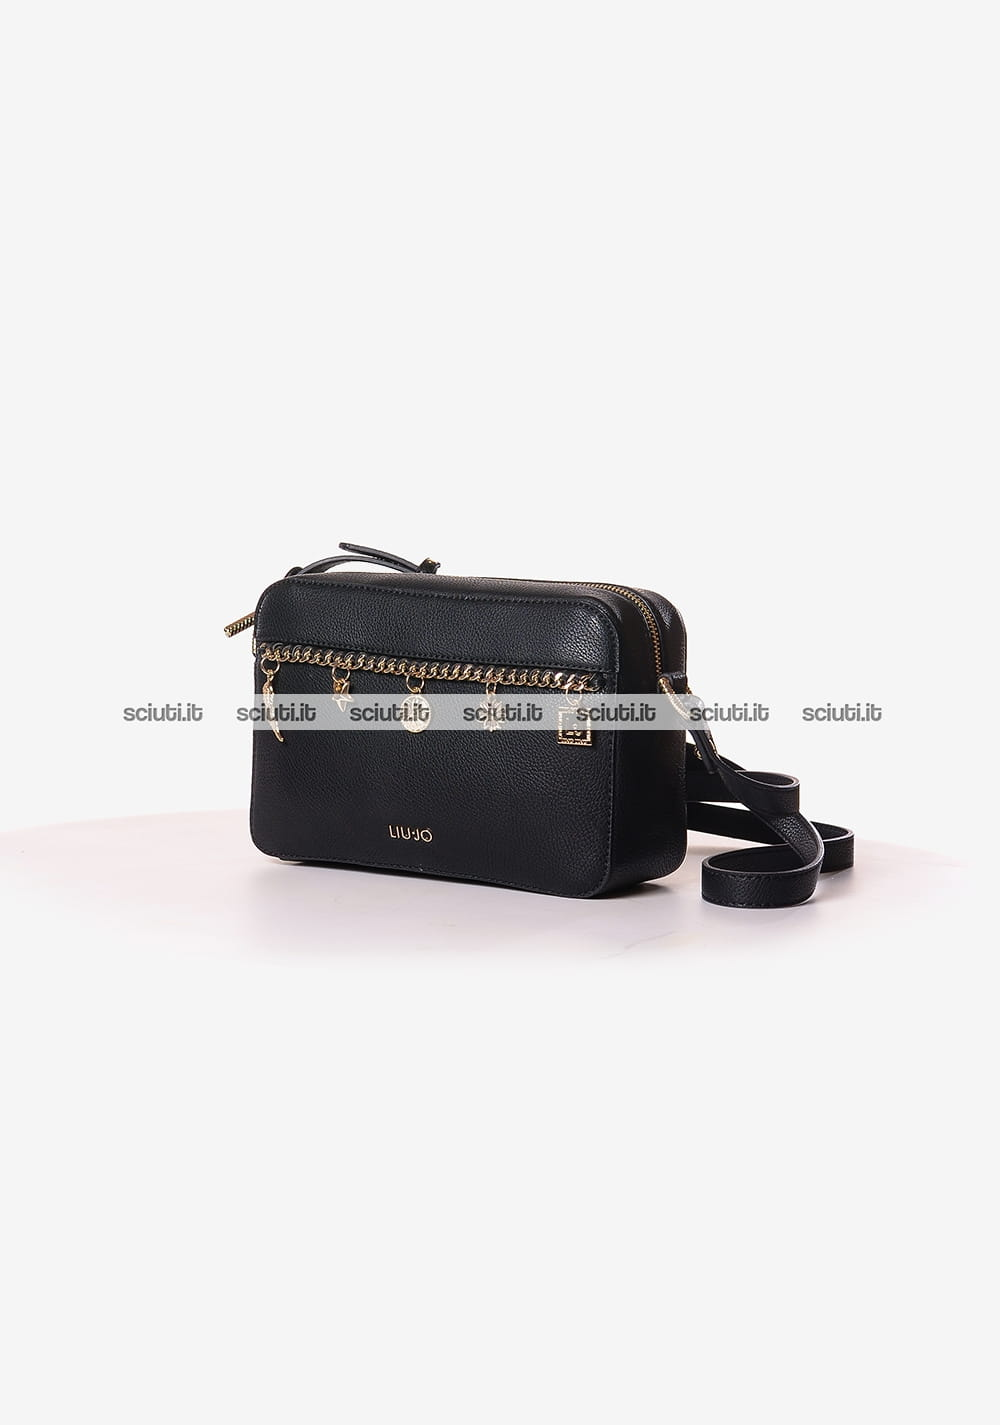 Borsa tracolla Liu Jo donna Lady Majesty nero | Sciuti.it